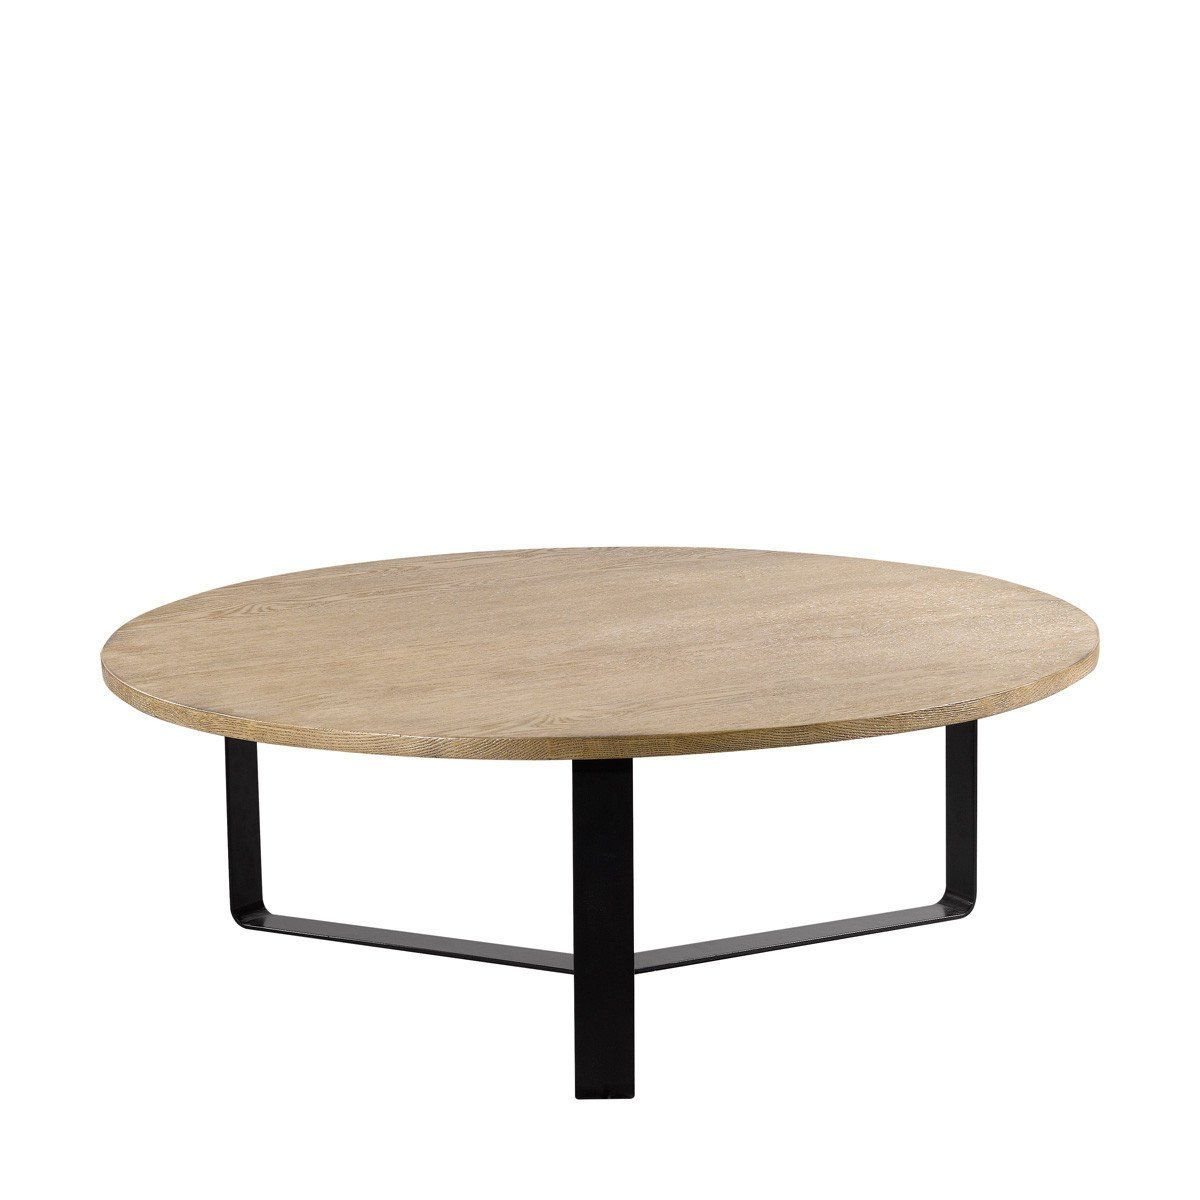 Curations limited gap round coffee table coffee table